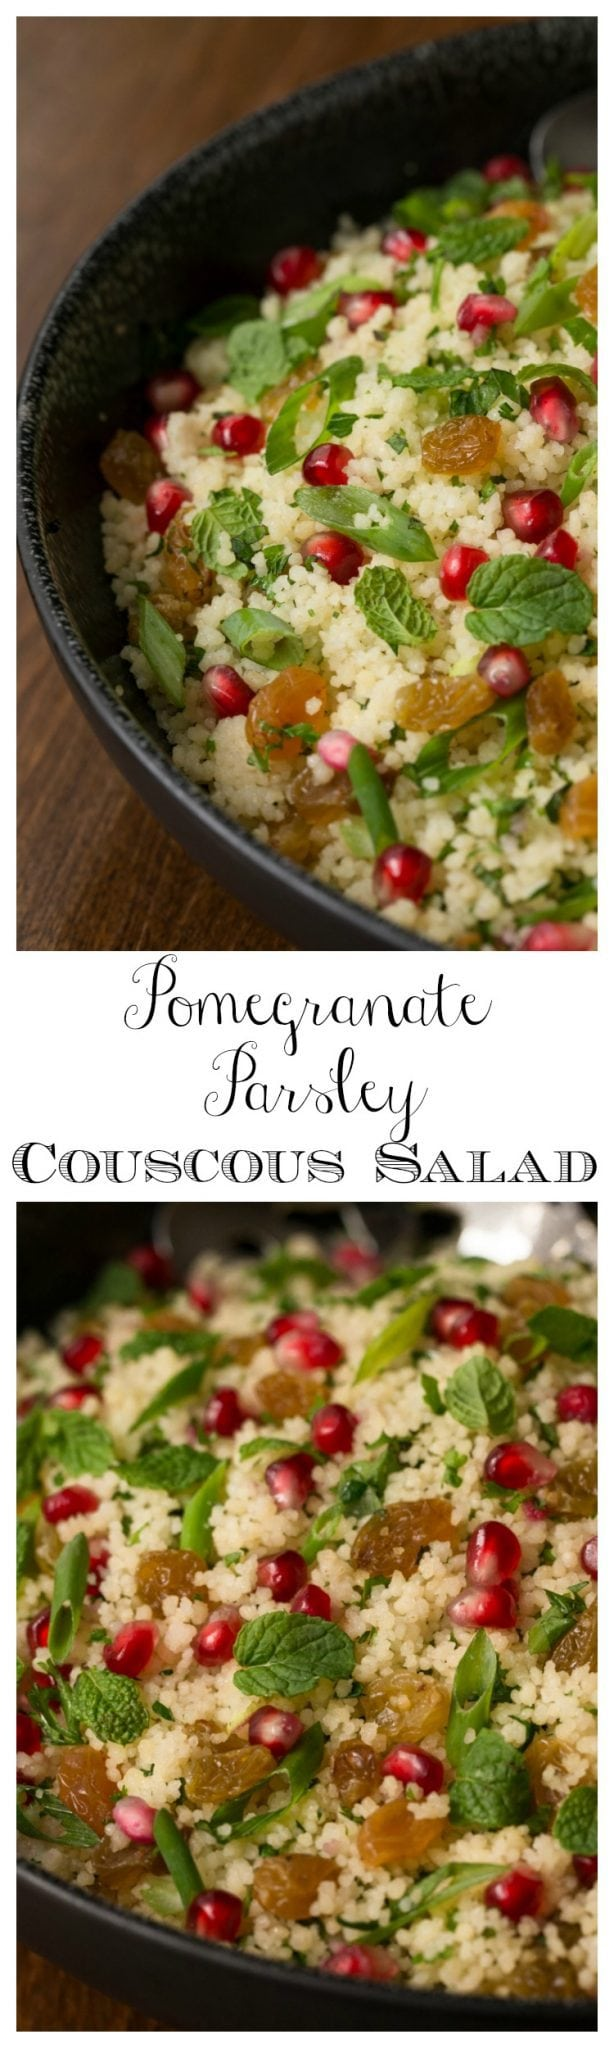 Pomegranate Parsley Couscous Salad - super easy to prepare, this is the perfect healthy side for everyday and special occasions.